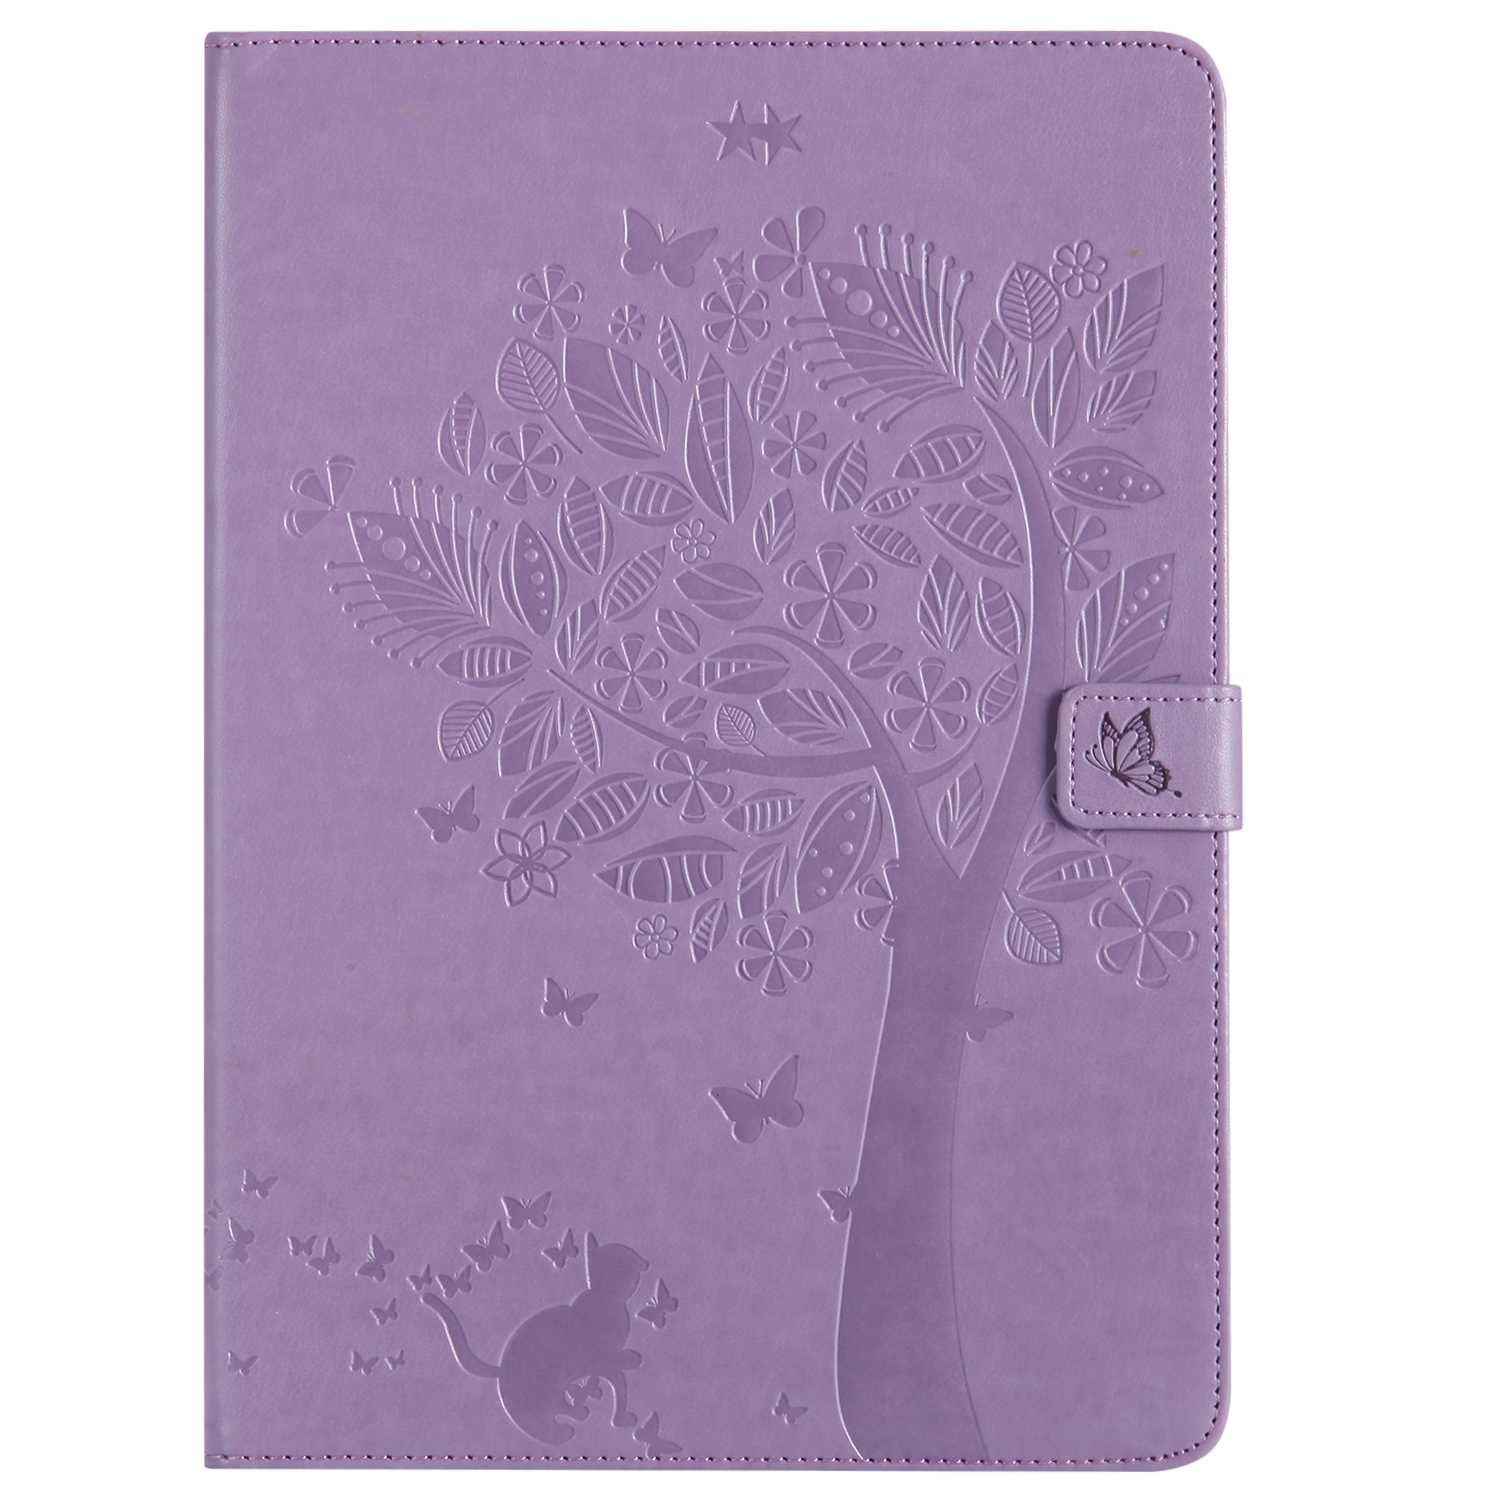 Bear Village iPad Pro 10.5 Inch Case, Leather Magnetic Case, Fullbody Protective Cover with Stand Function for Apple iPad Pro 10.5 Inch, Purple by Bear Village